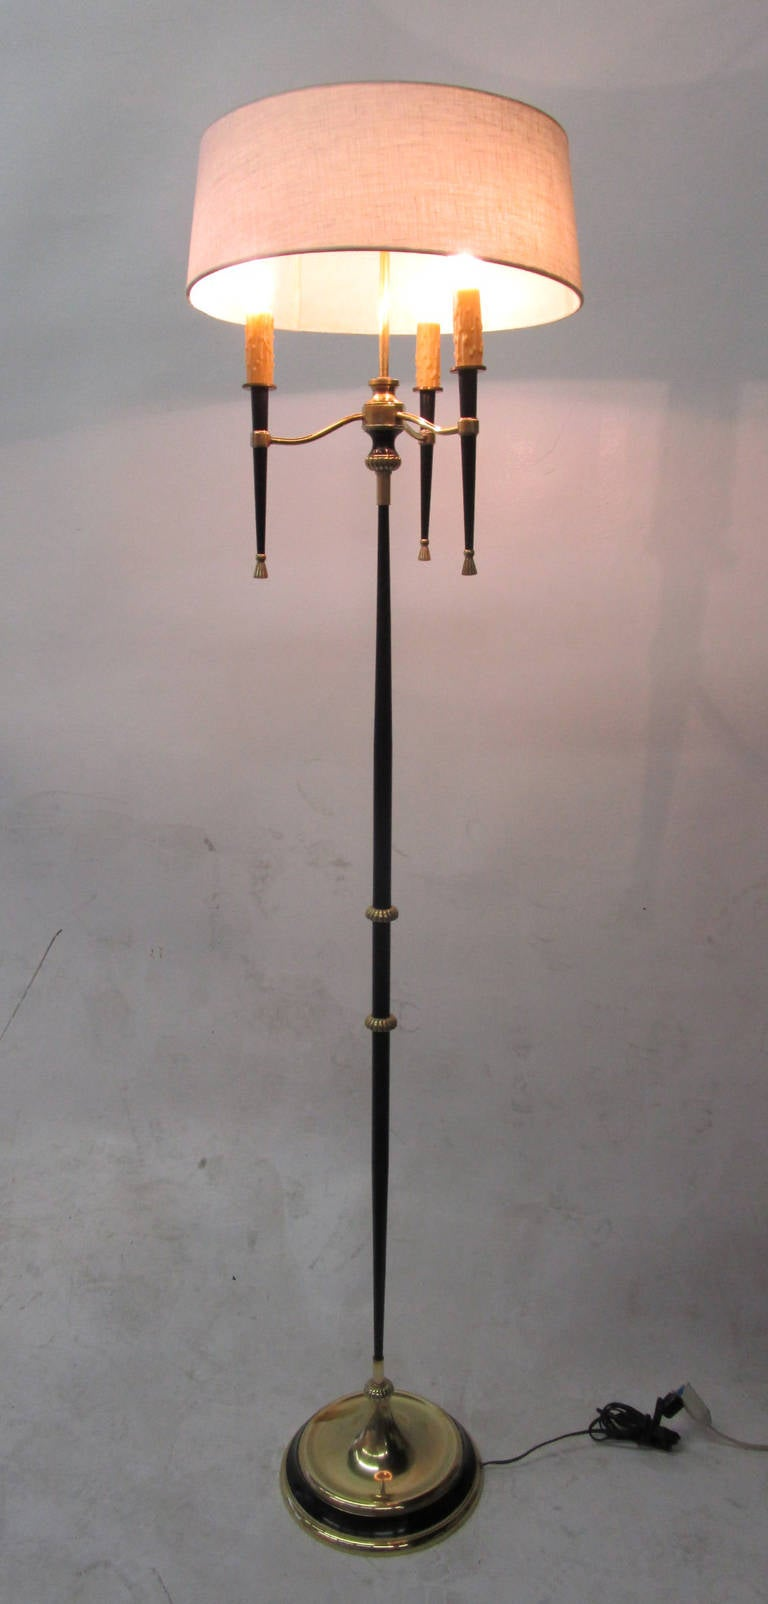 French 1950s floor lamp for sale at 1stdibs for White french floor lamp